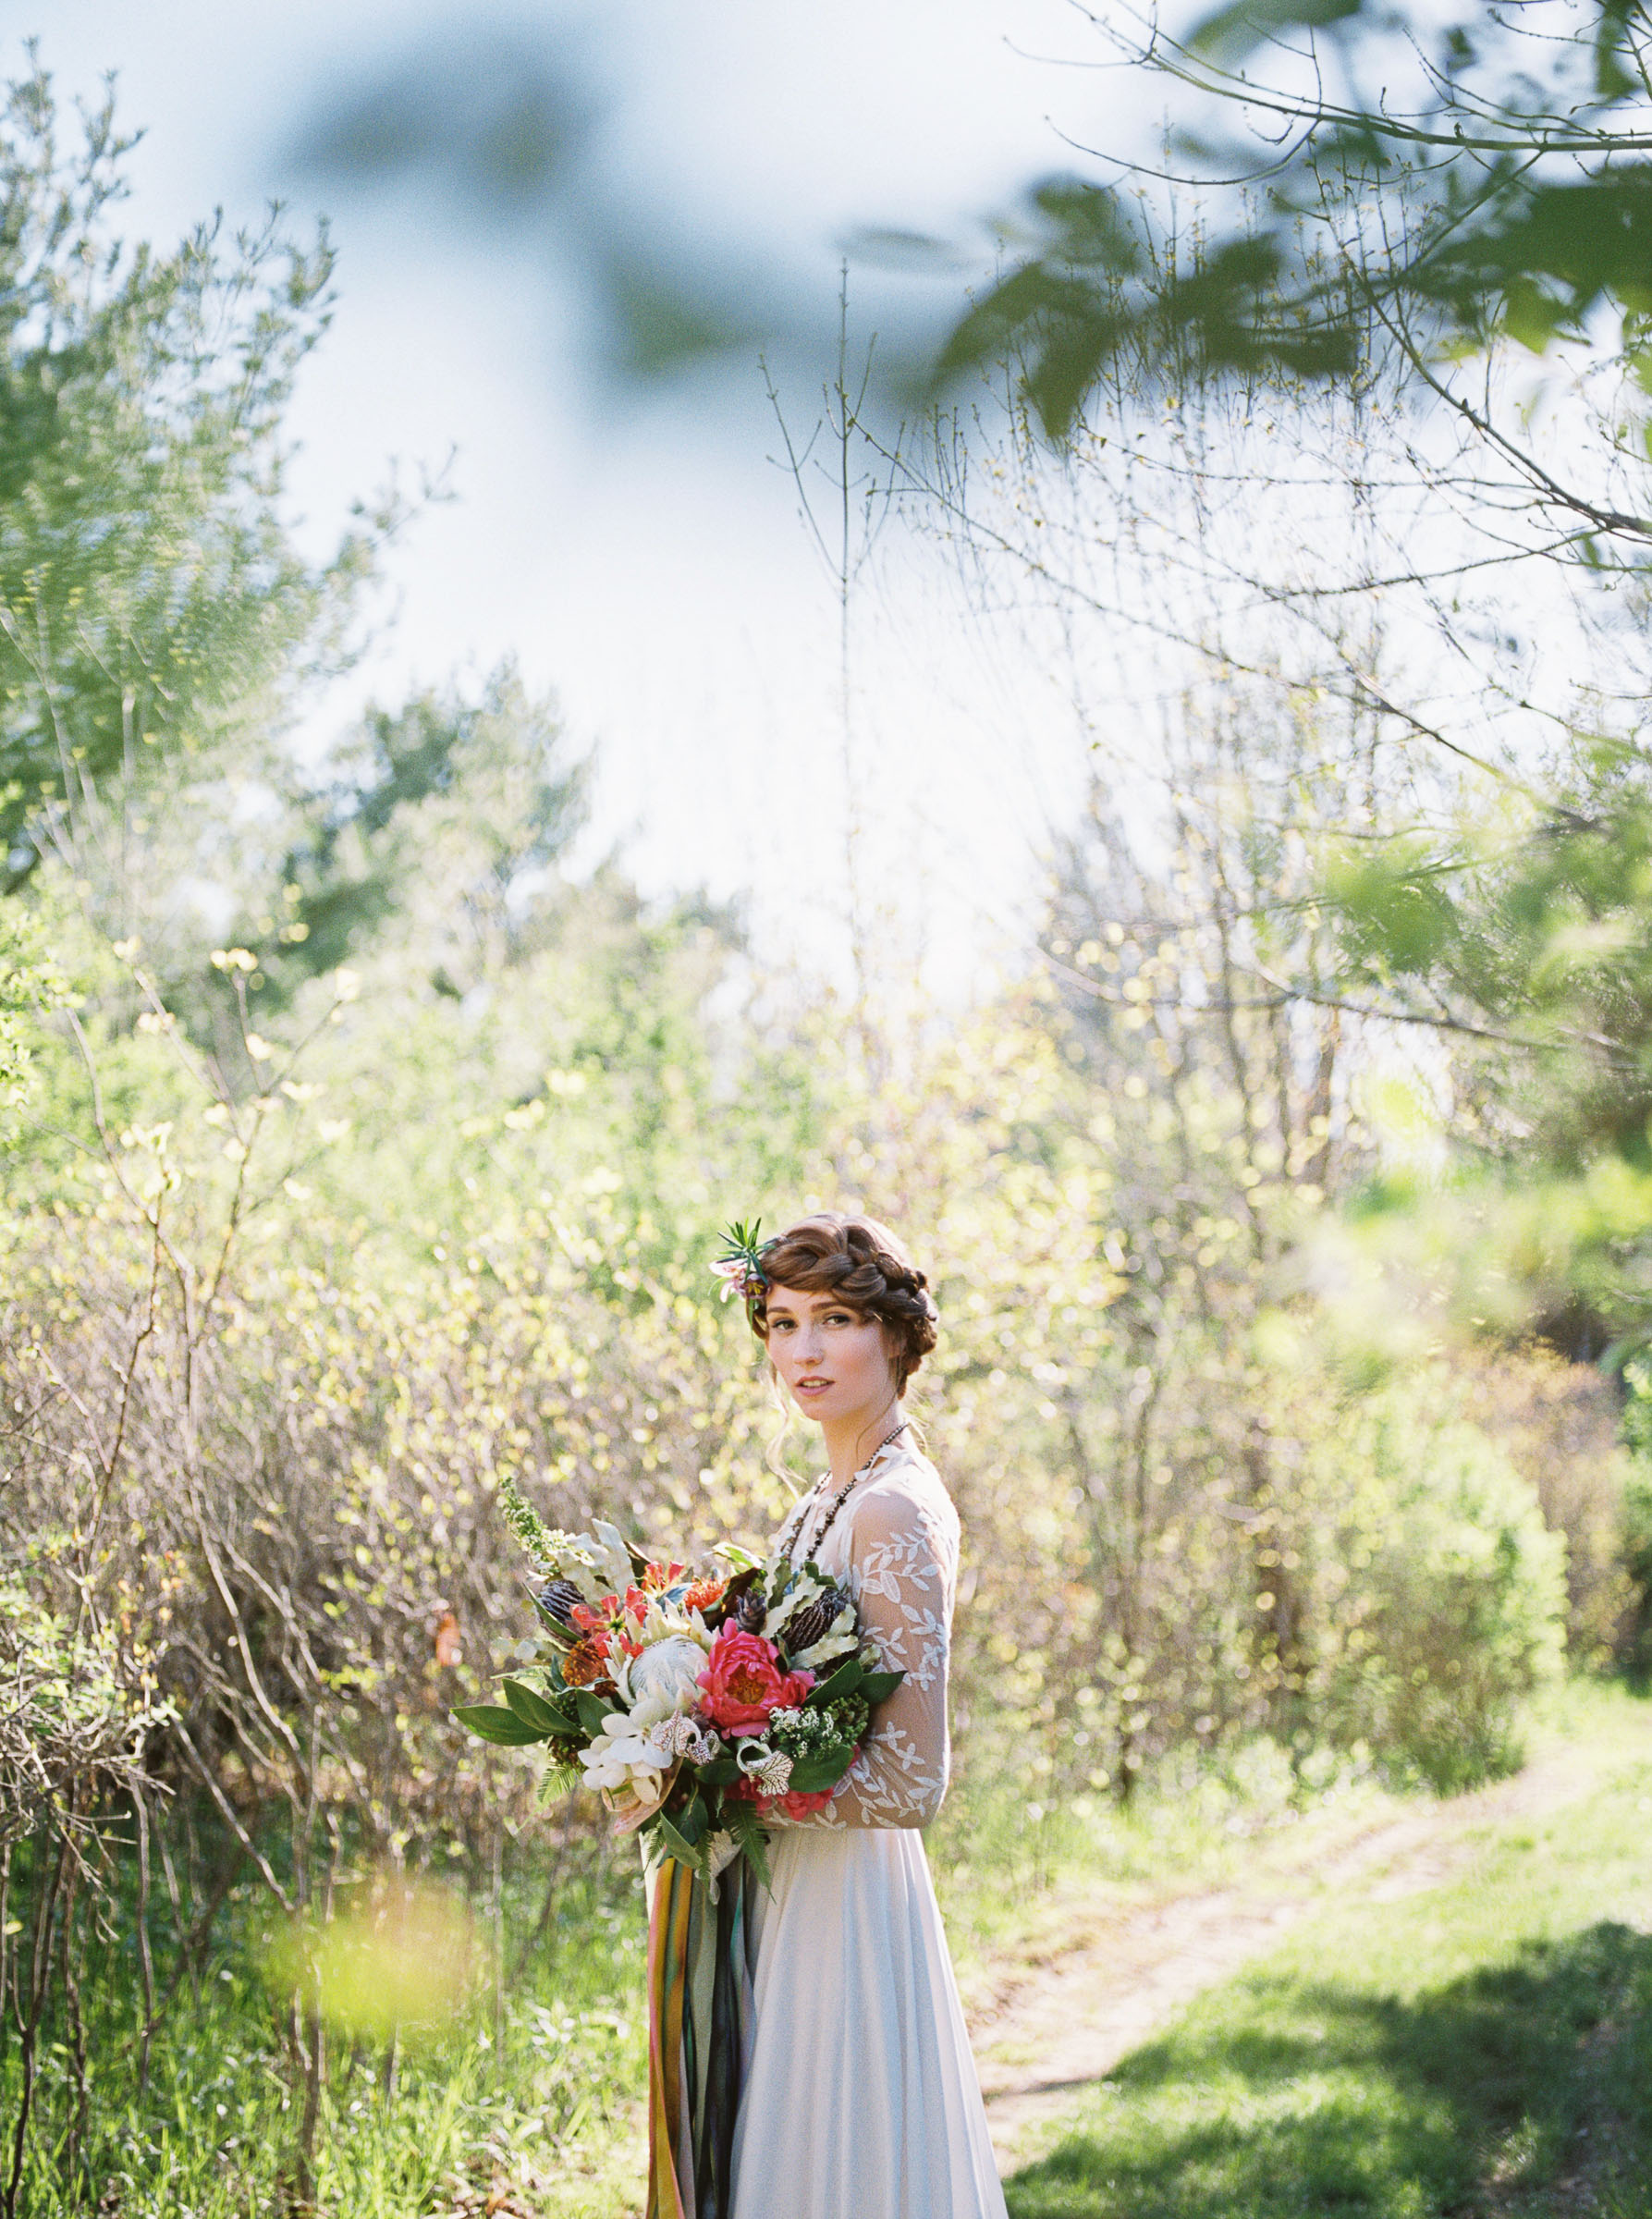 Alexandra-Elise-Photography-Ali-Reed-Film-Wedding-Photographer-New-York-Firelight-Camps-030